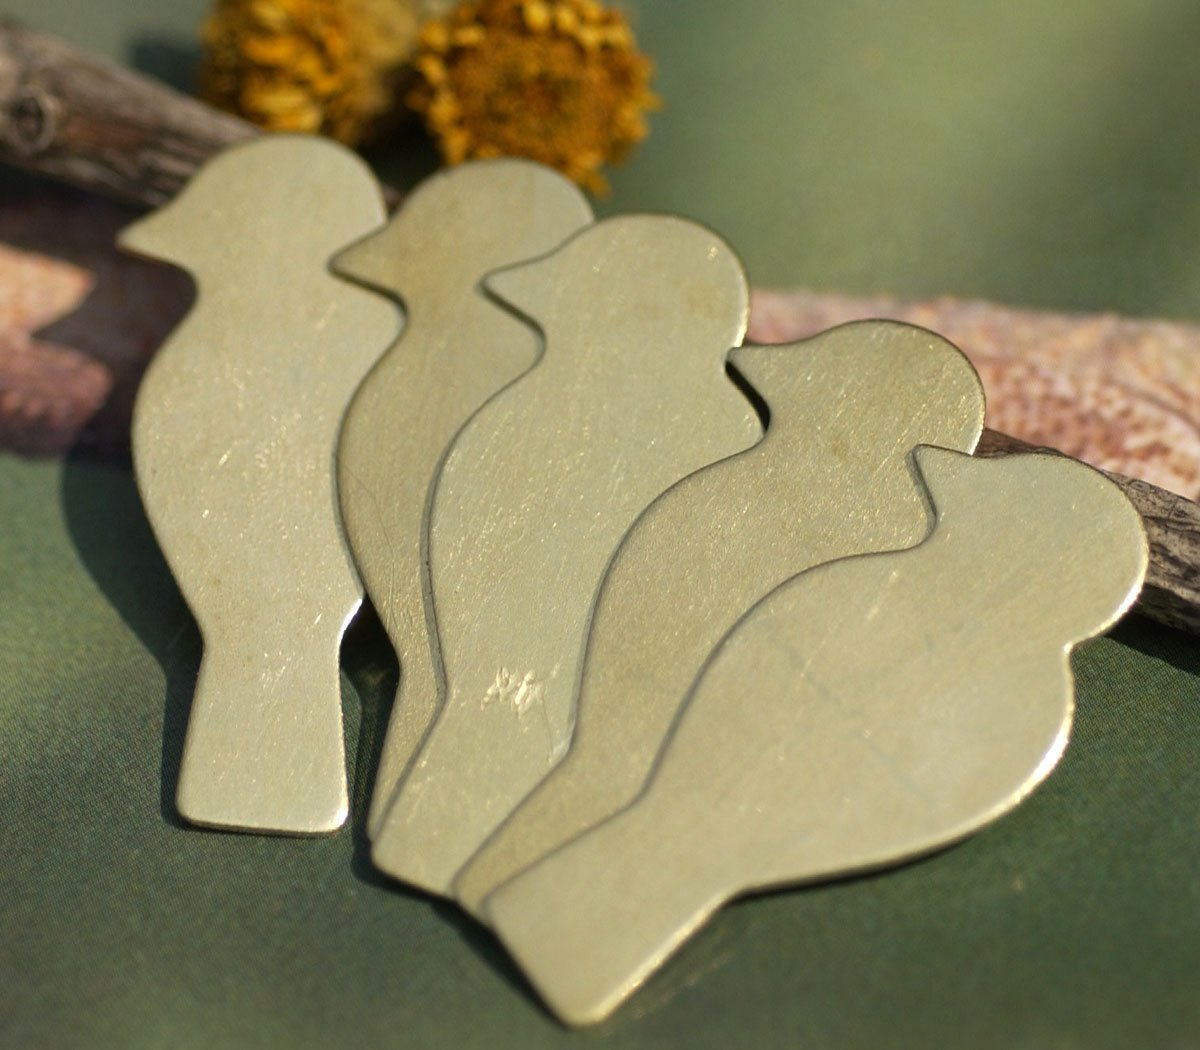 Nickel Silver Perched Bird Blank in Lotus Flowers Texture for Metalworking Enameling Stamping Texturing Blanks - 4 pieces